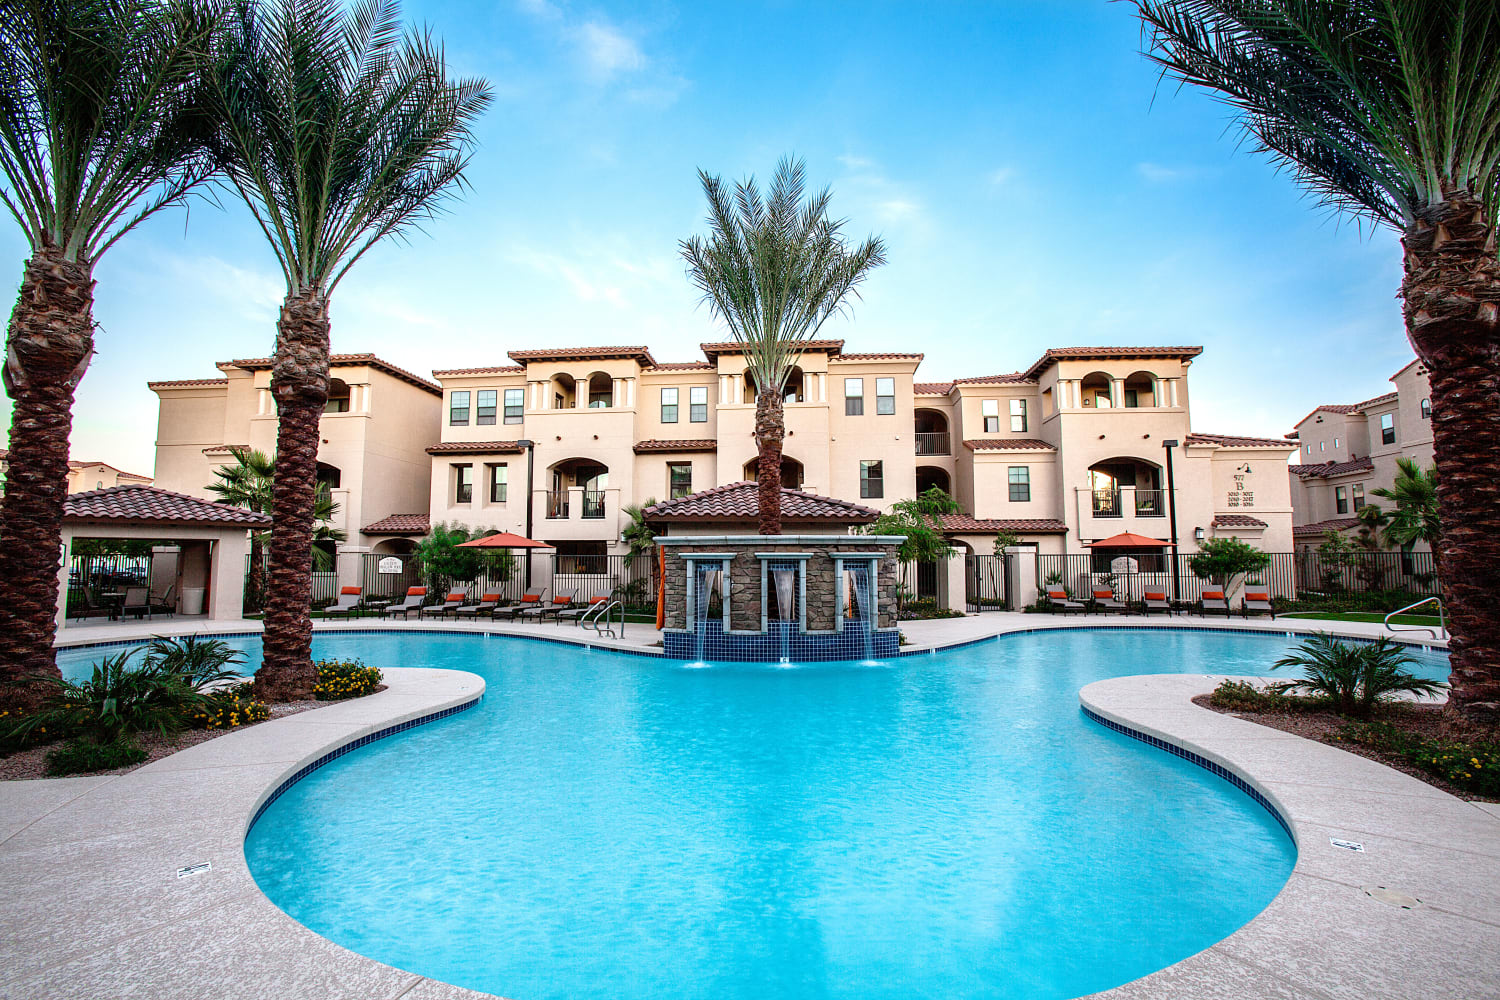 Enjoy a resort style pool at San Marquis in Tempe, Arizona